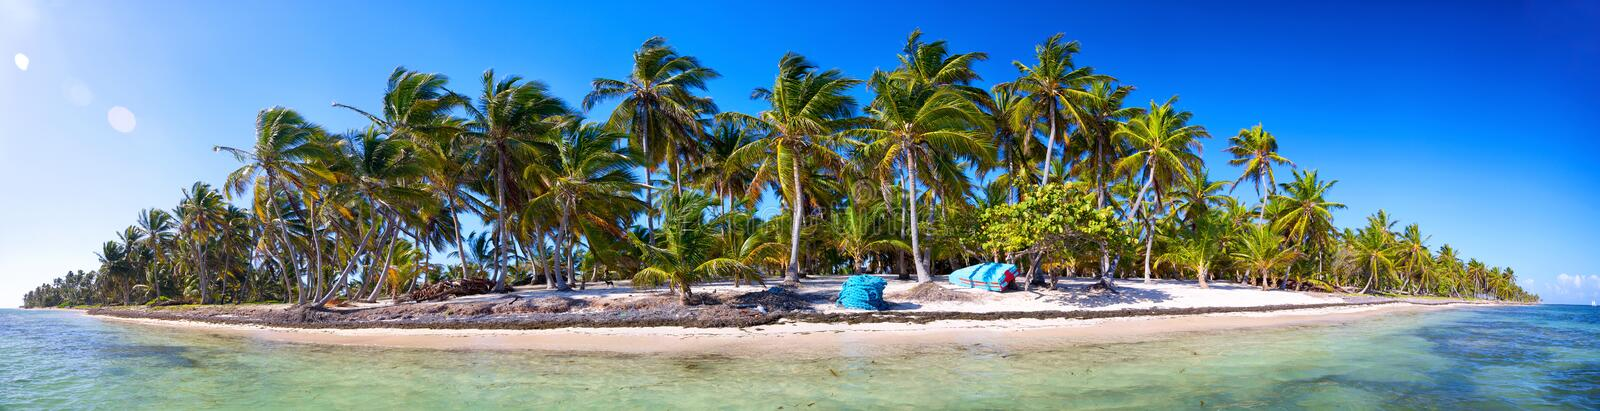 Tropical beach panorama stock image